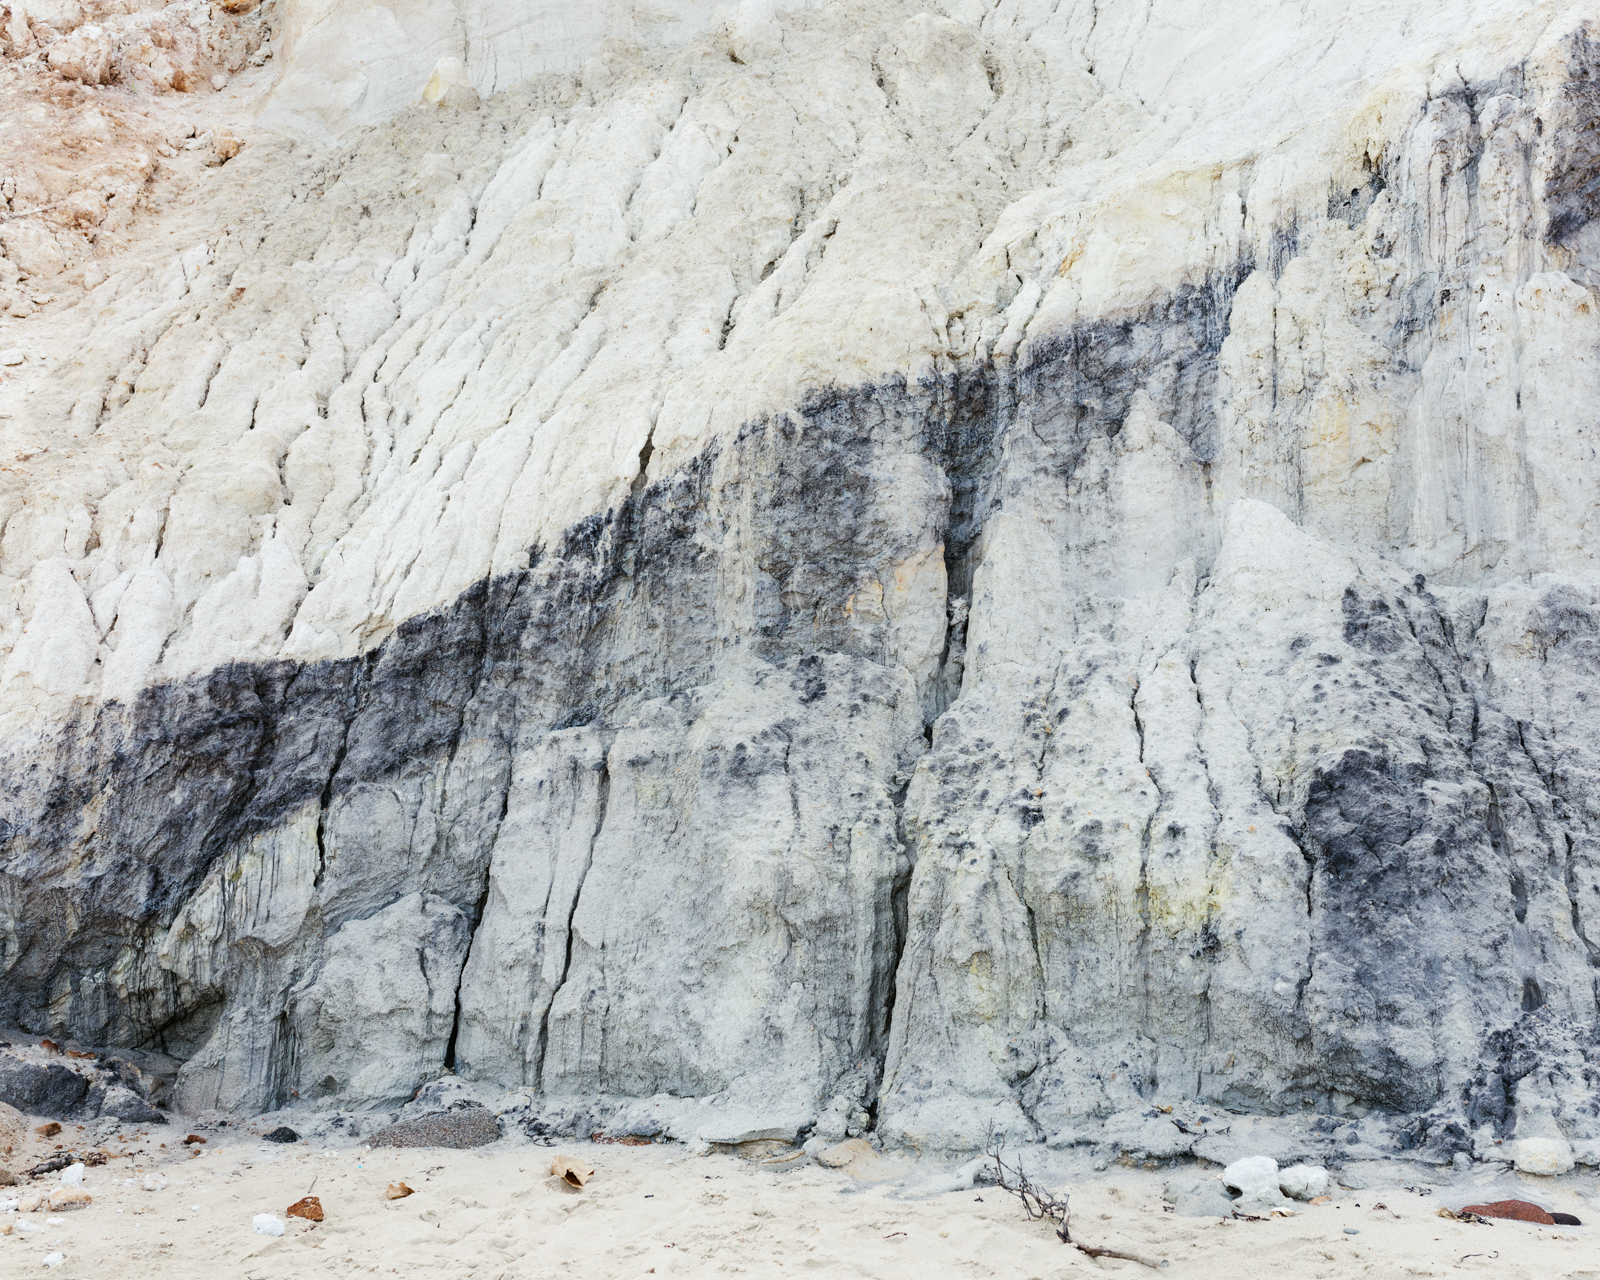 Erosion at Aquinnah,  2018 © Lily Brooks